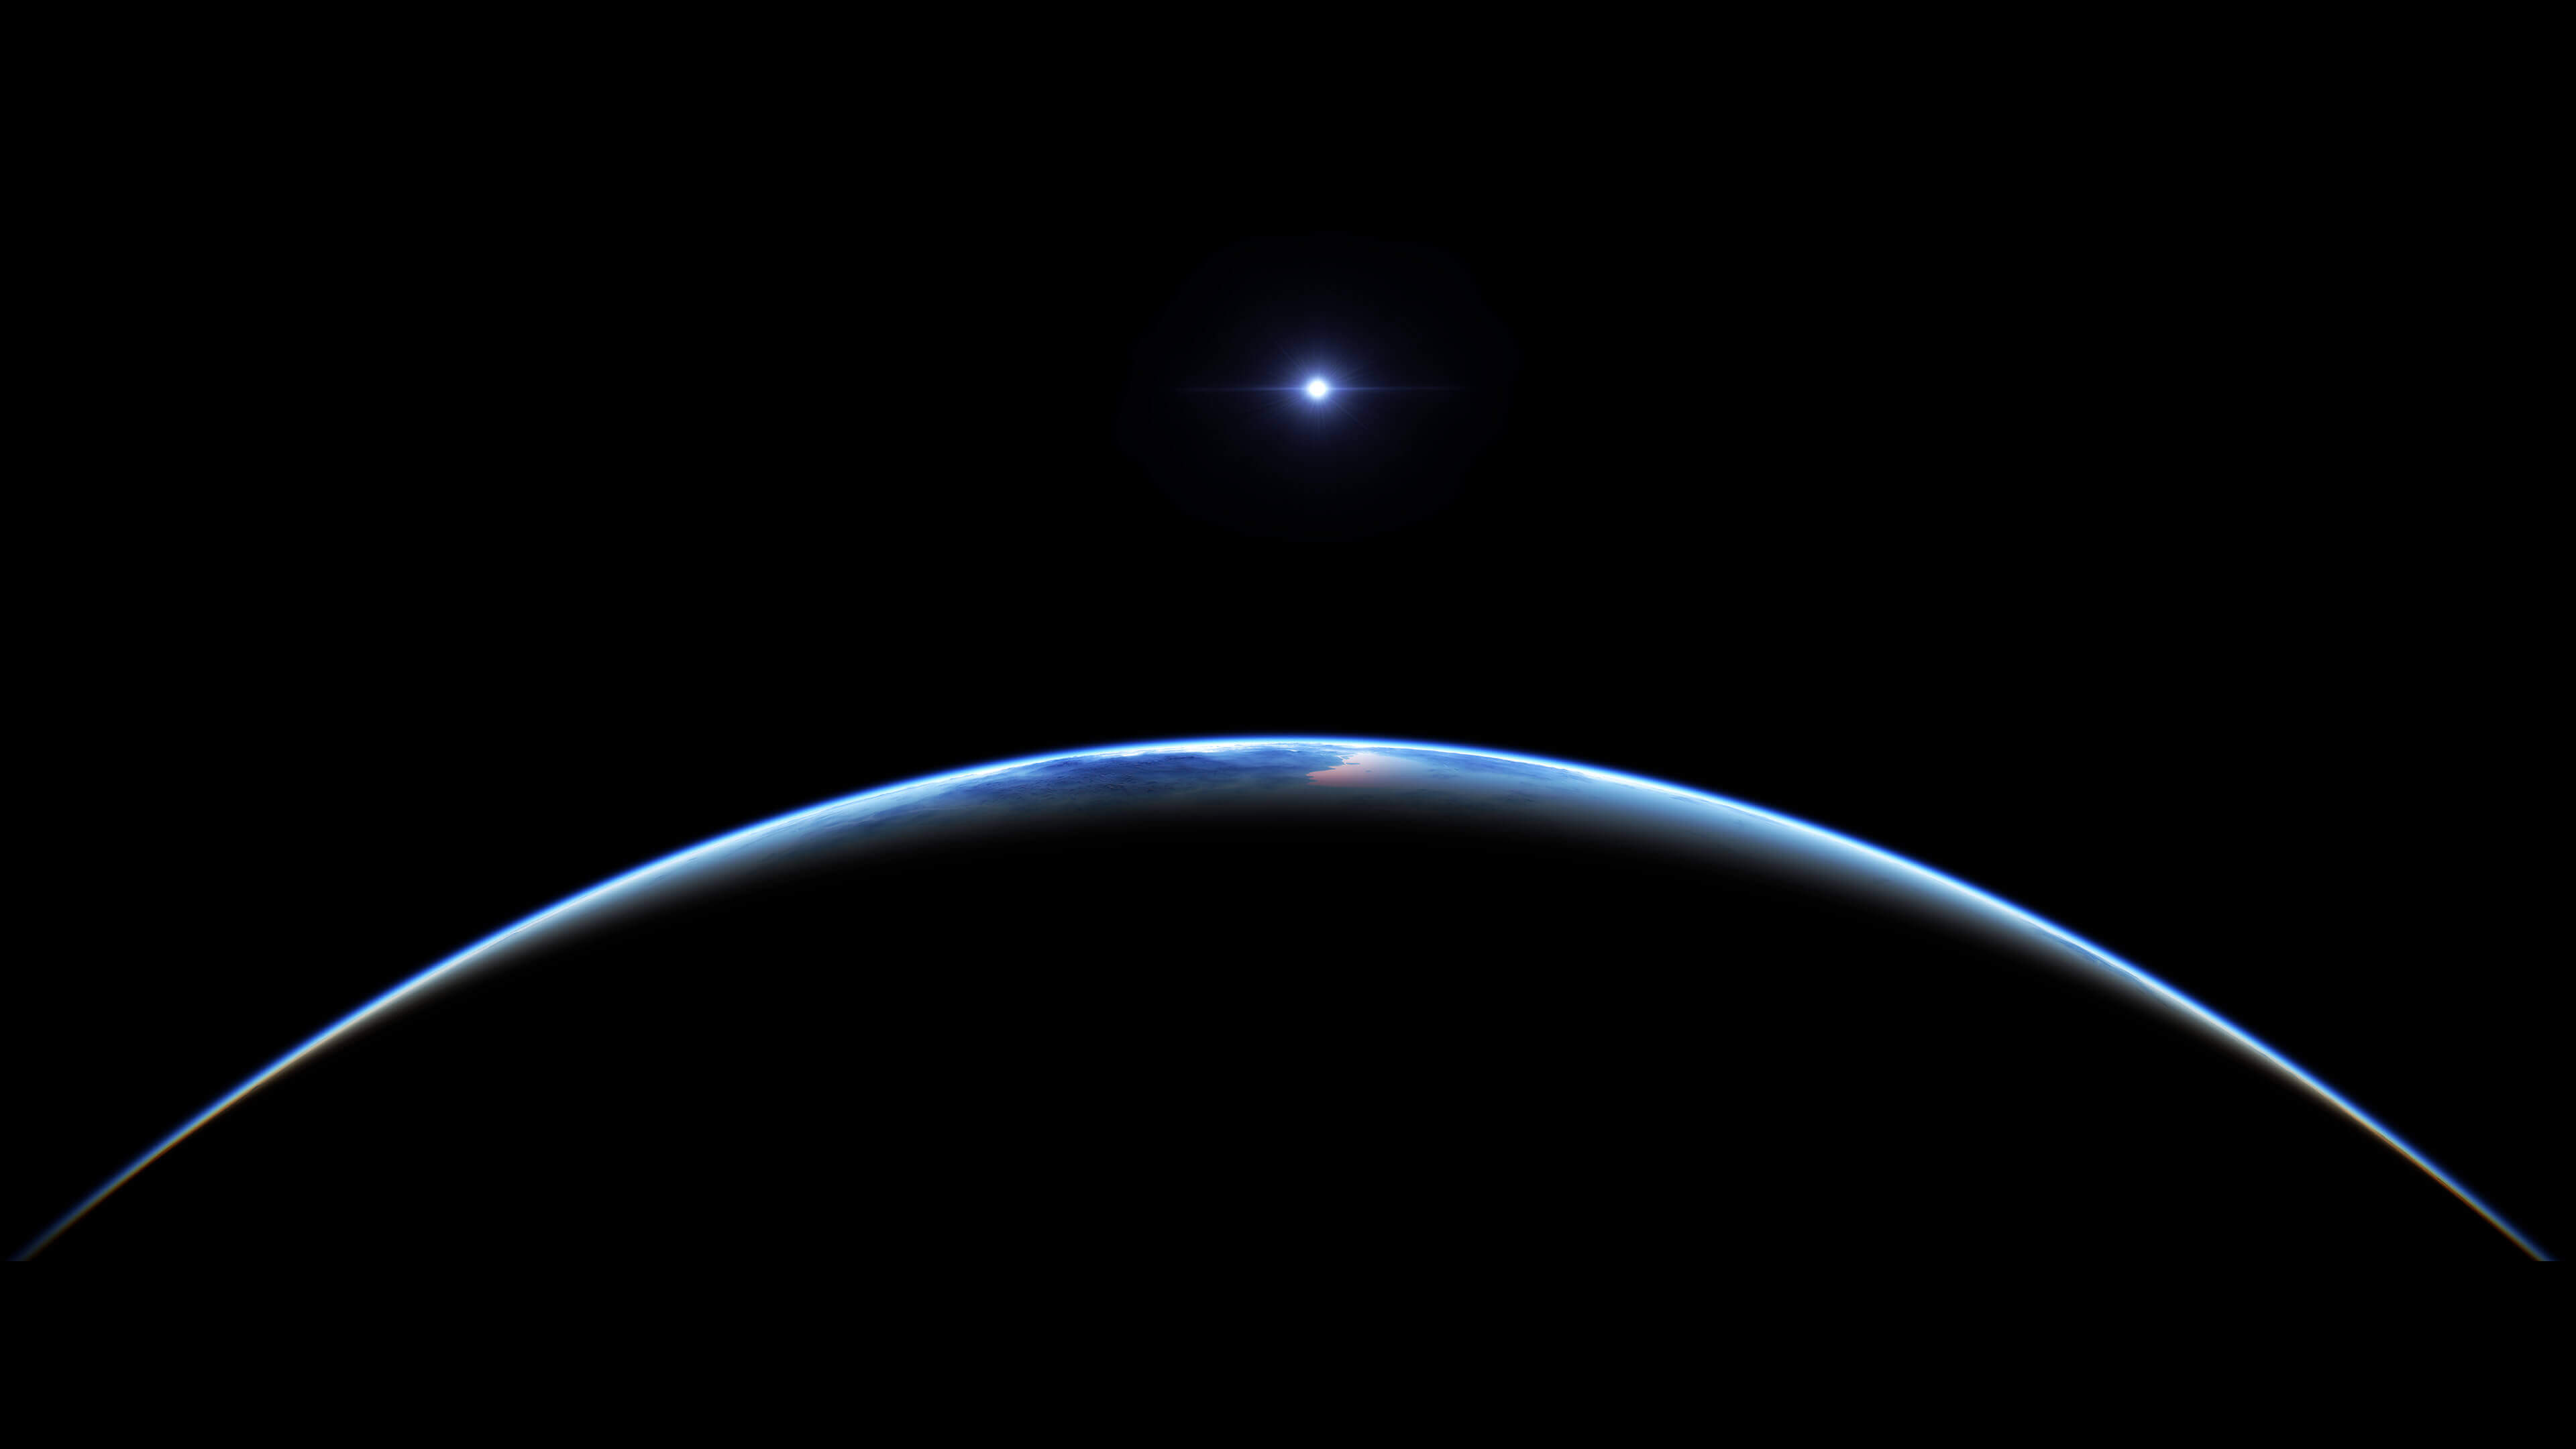 Earth at Night view from space 4K wallpaper